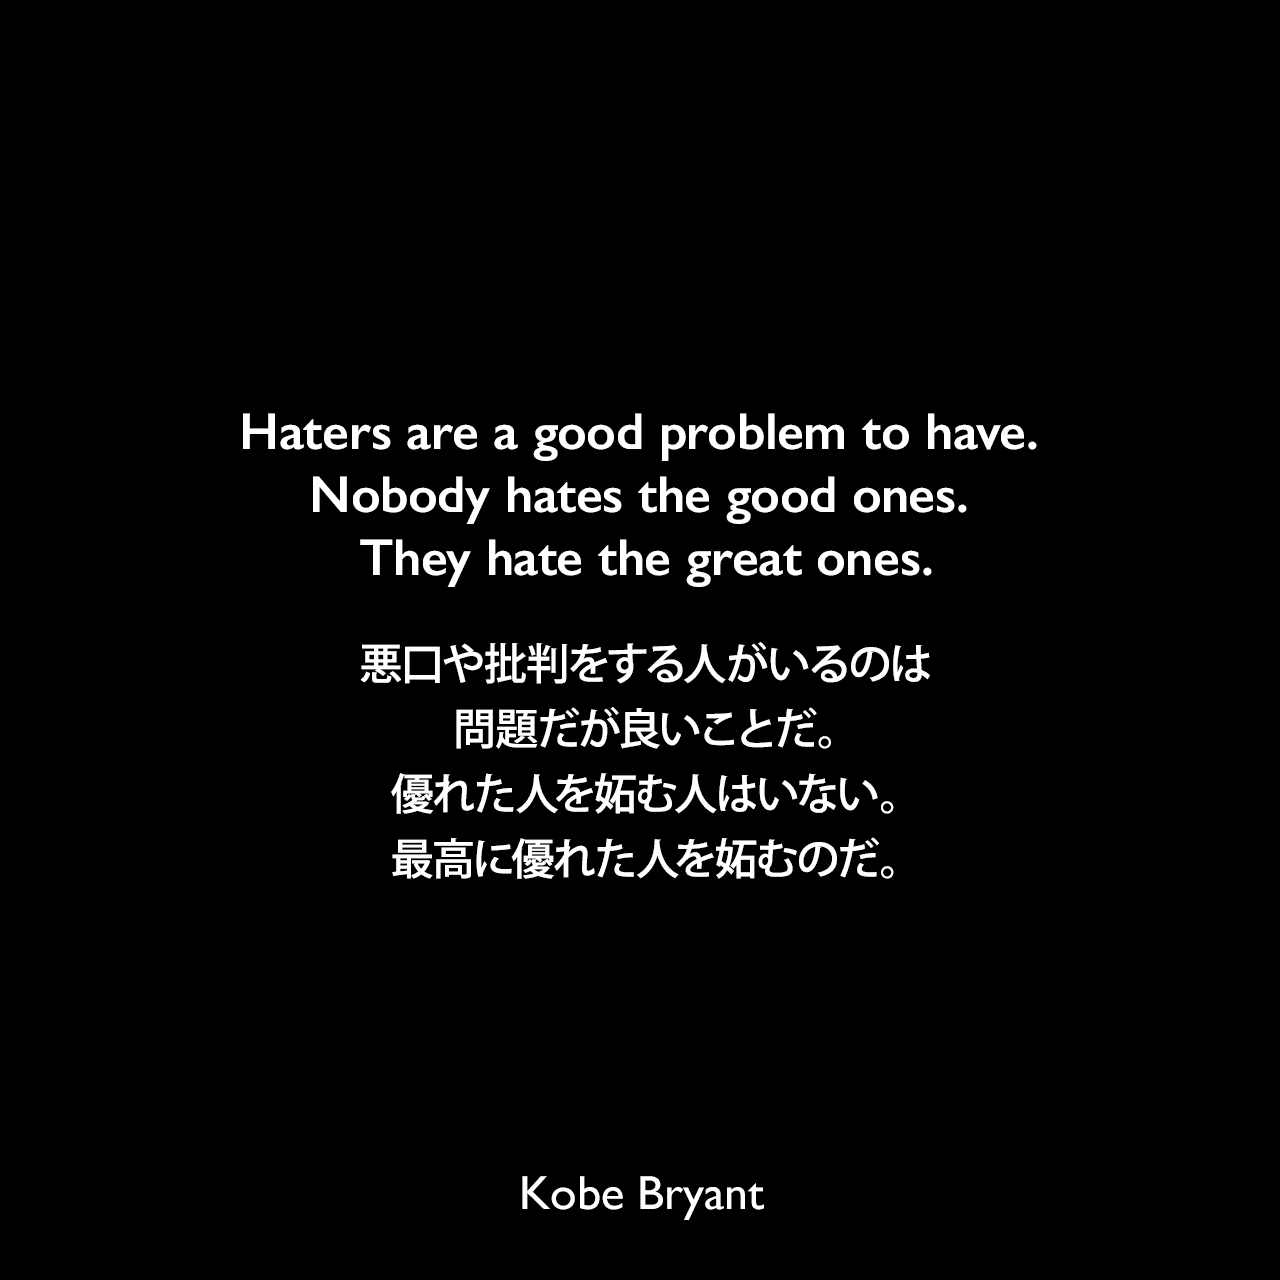 Haters are a good problem to have. Nobody hates the good ones. They hate the great ones.悪口や批判をする人がいるのは問題だが良いことだ。優れた人を妬む人はいない。最高に優れた人を妬むのだ。Kobe Bryant